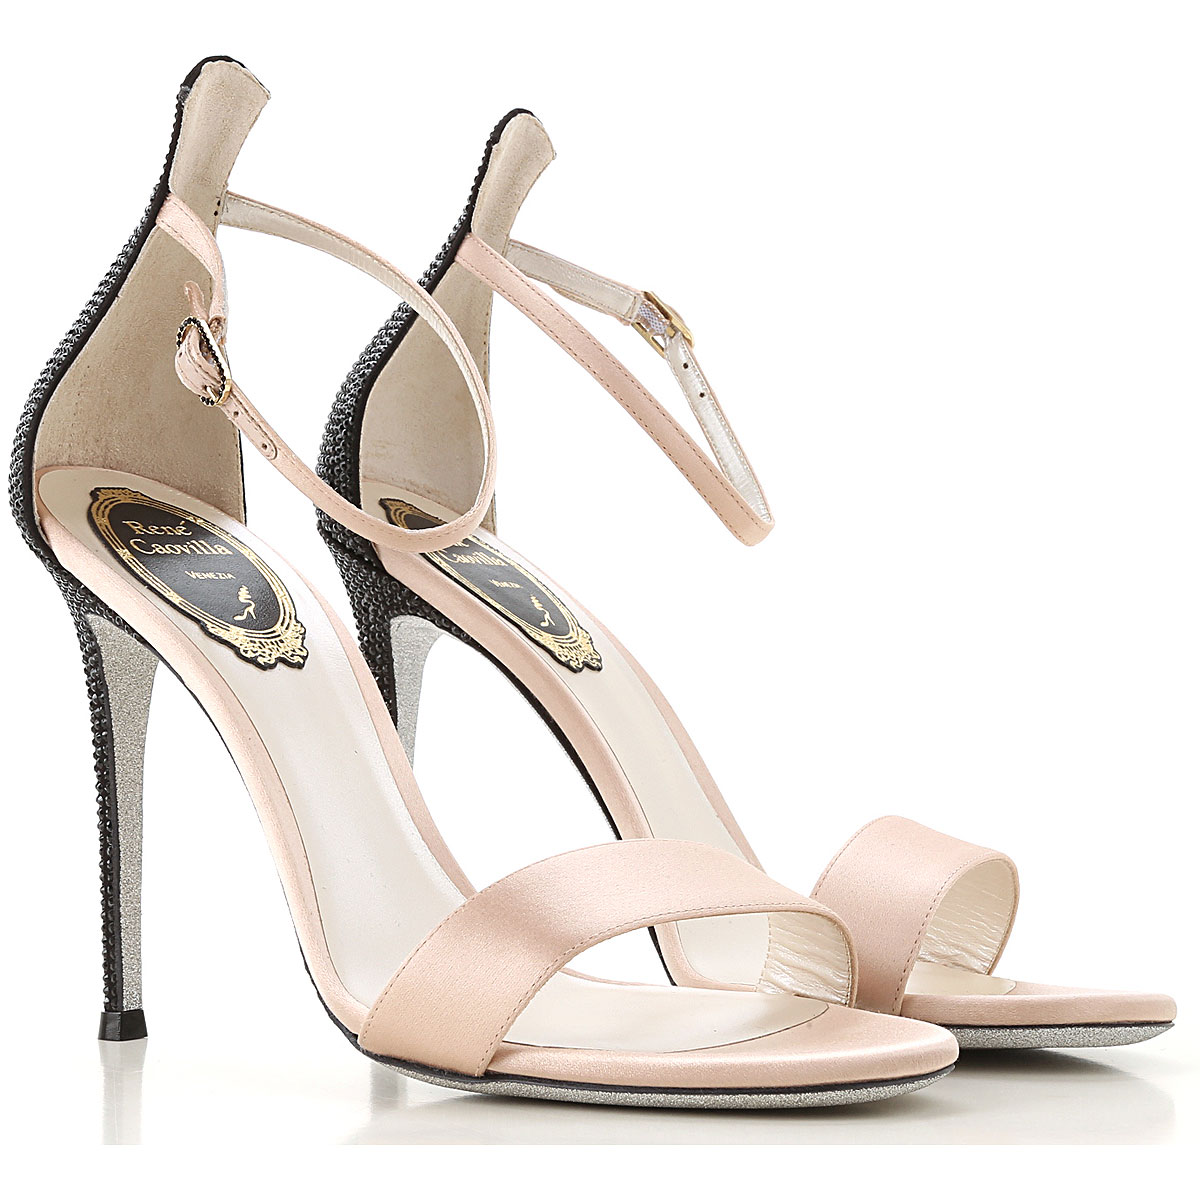 Rene Caovilla Sandals for Women On Sale, Nude, Strass, 2019, 6 7 8 8.5 9